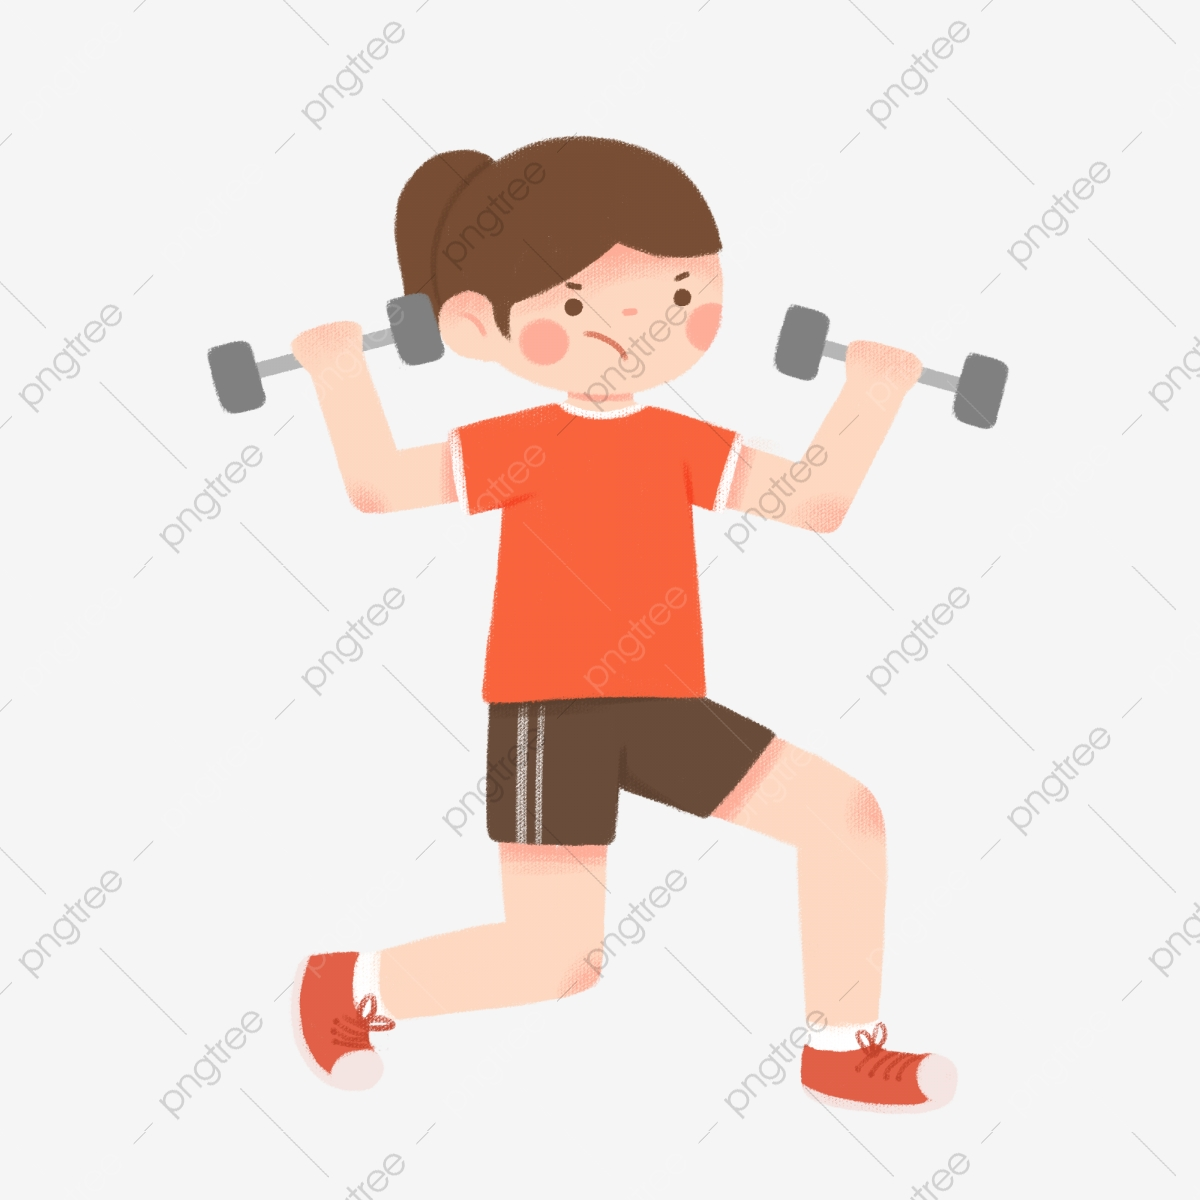 Dumbbells clipart exercise plan. Lifting dumbbell girl workout